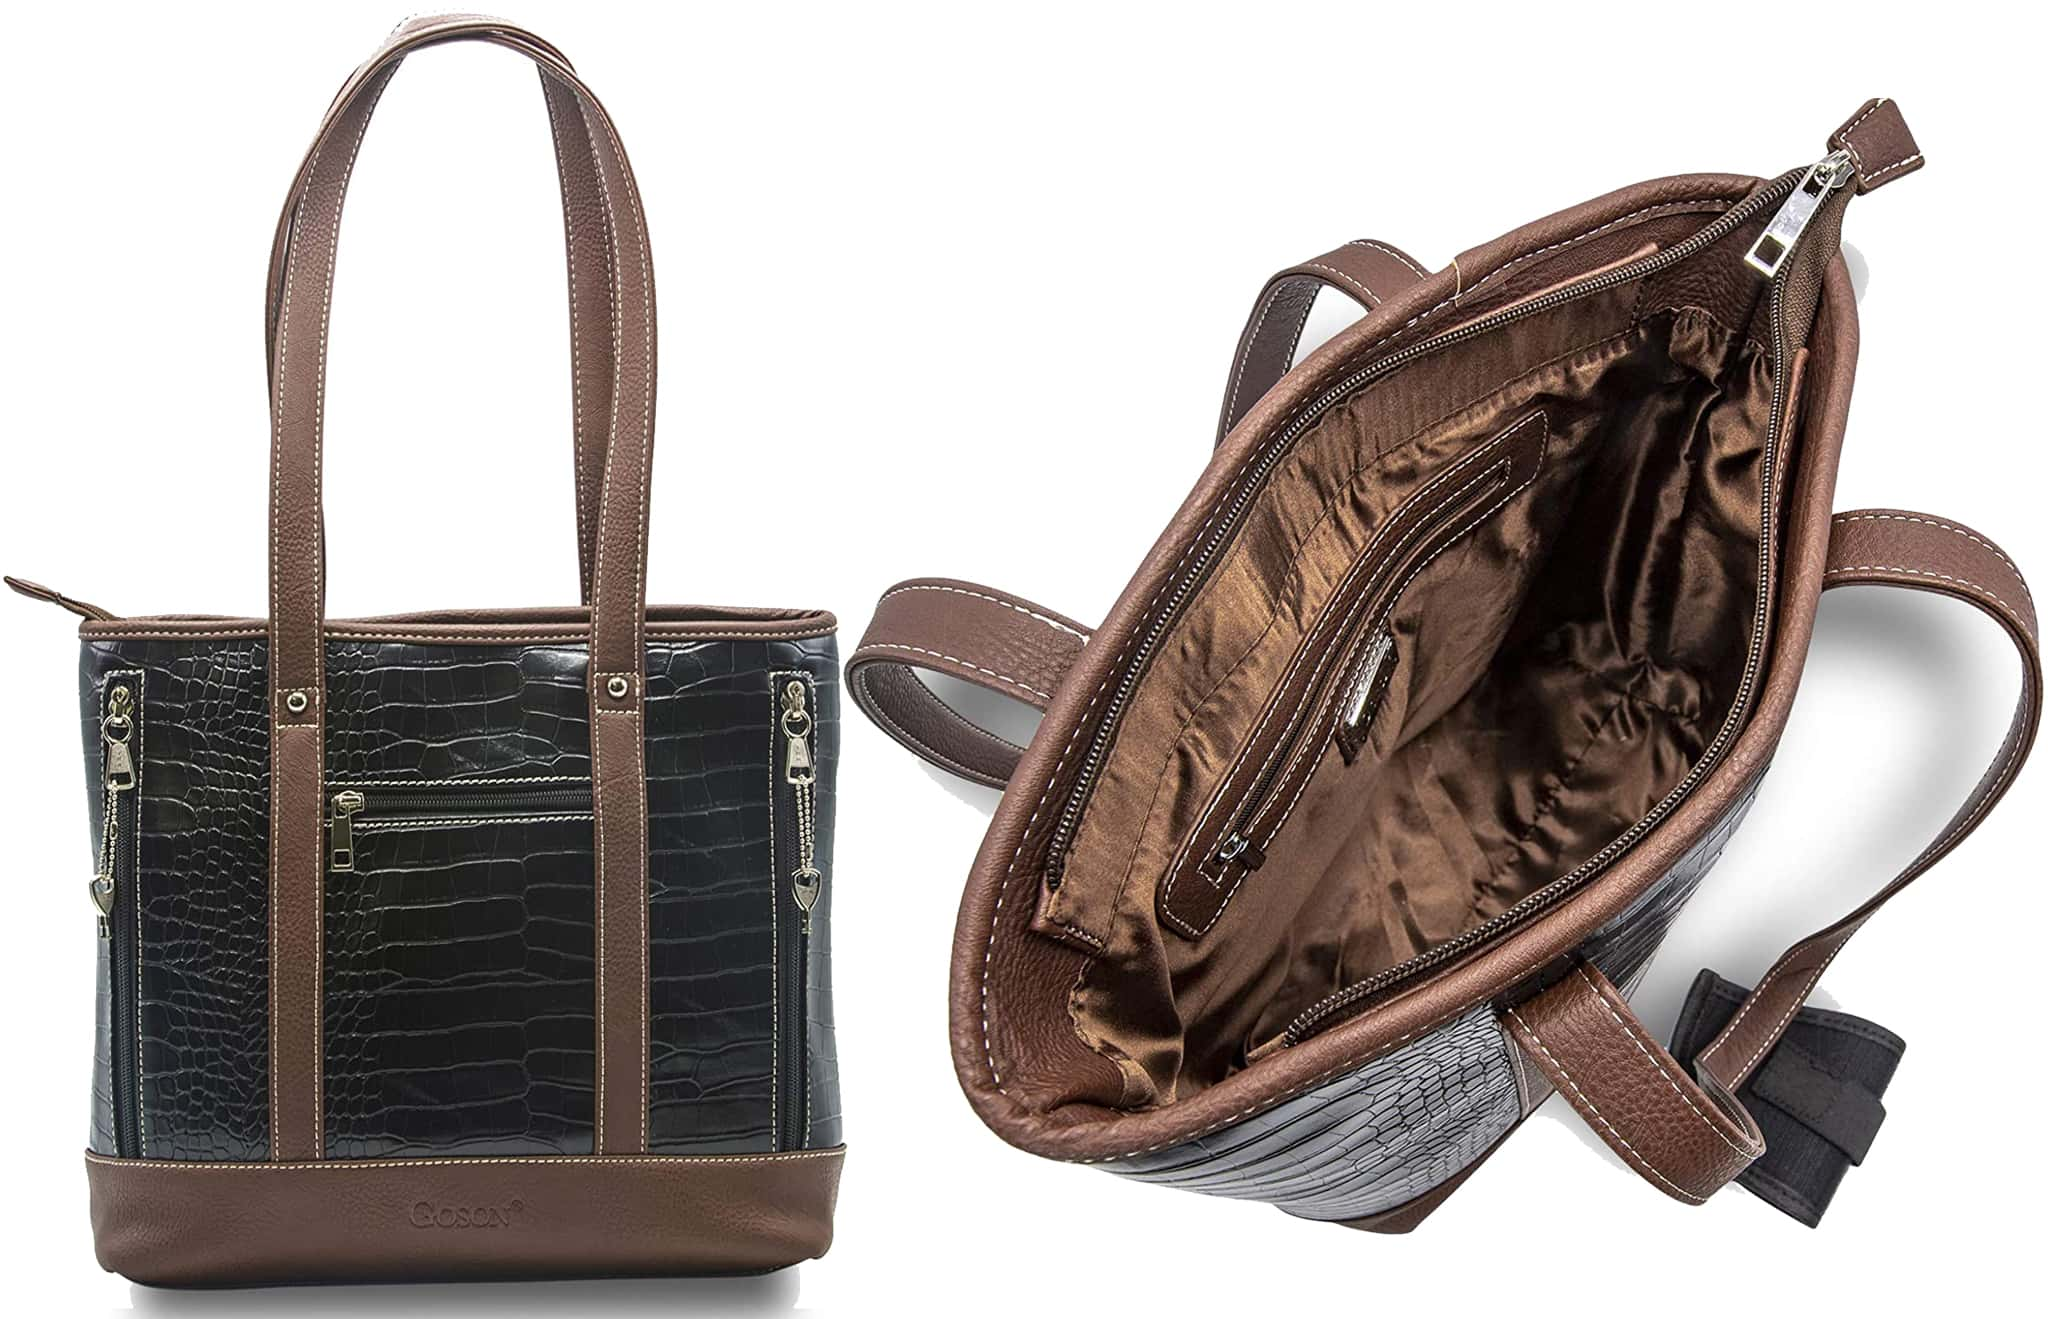 Spacious and practical, Goson's concealed carry tote has easy-access zips on either side that opens to a compartment for your firearm